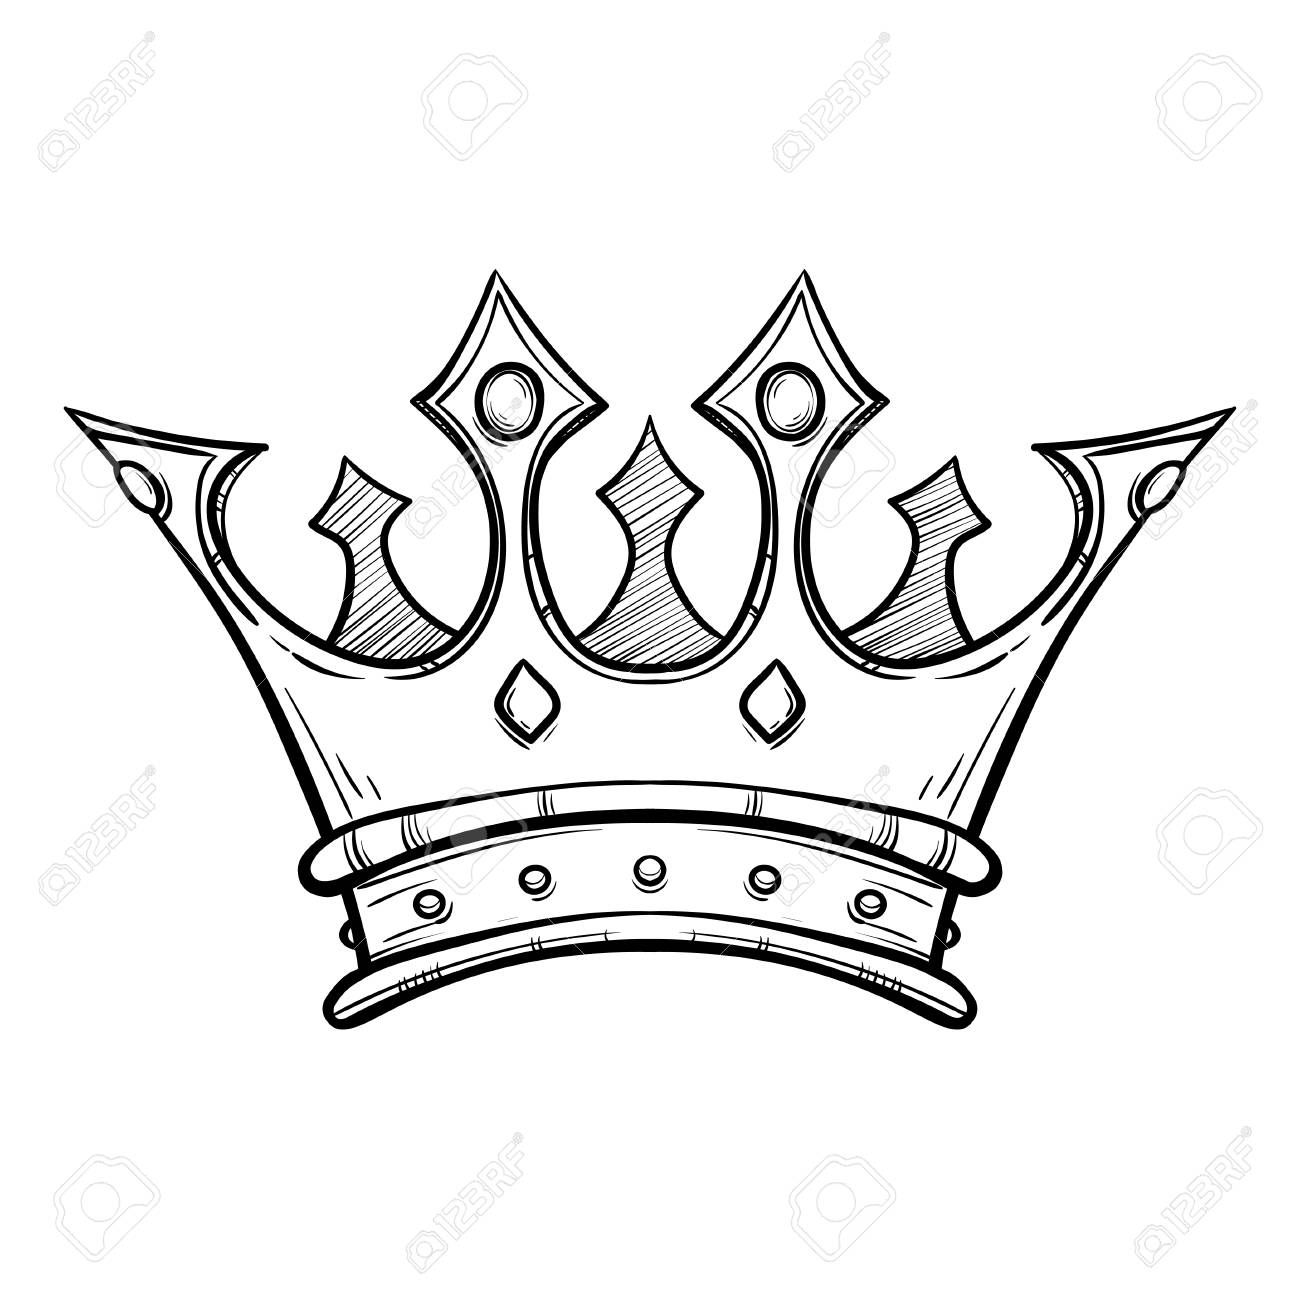 Youth beauty queen being crowned clipart svg royalty free download Stock Vector   Crown   Crown tattoo design, Tattoo drawings ... svg royalty free download